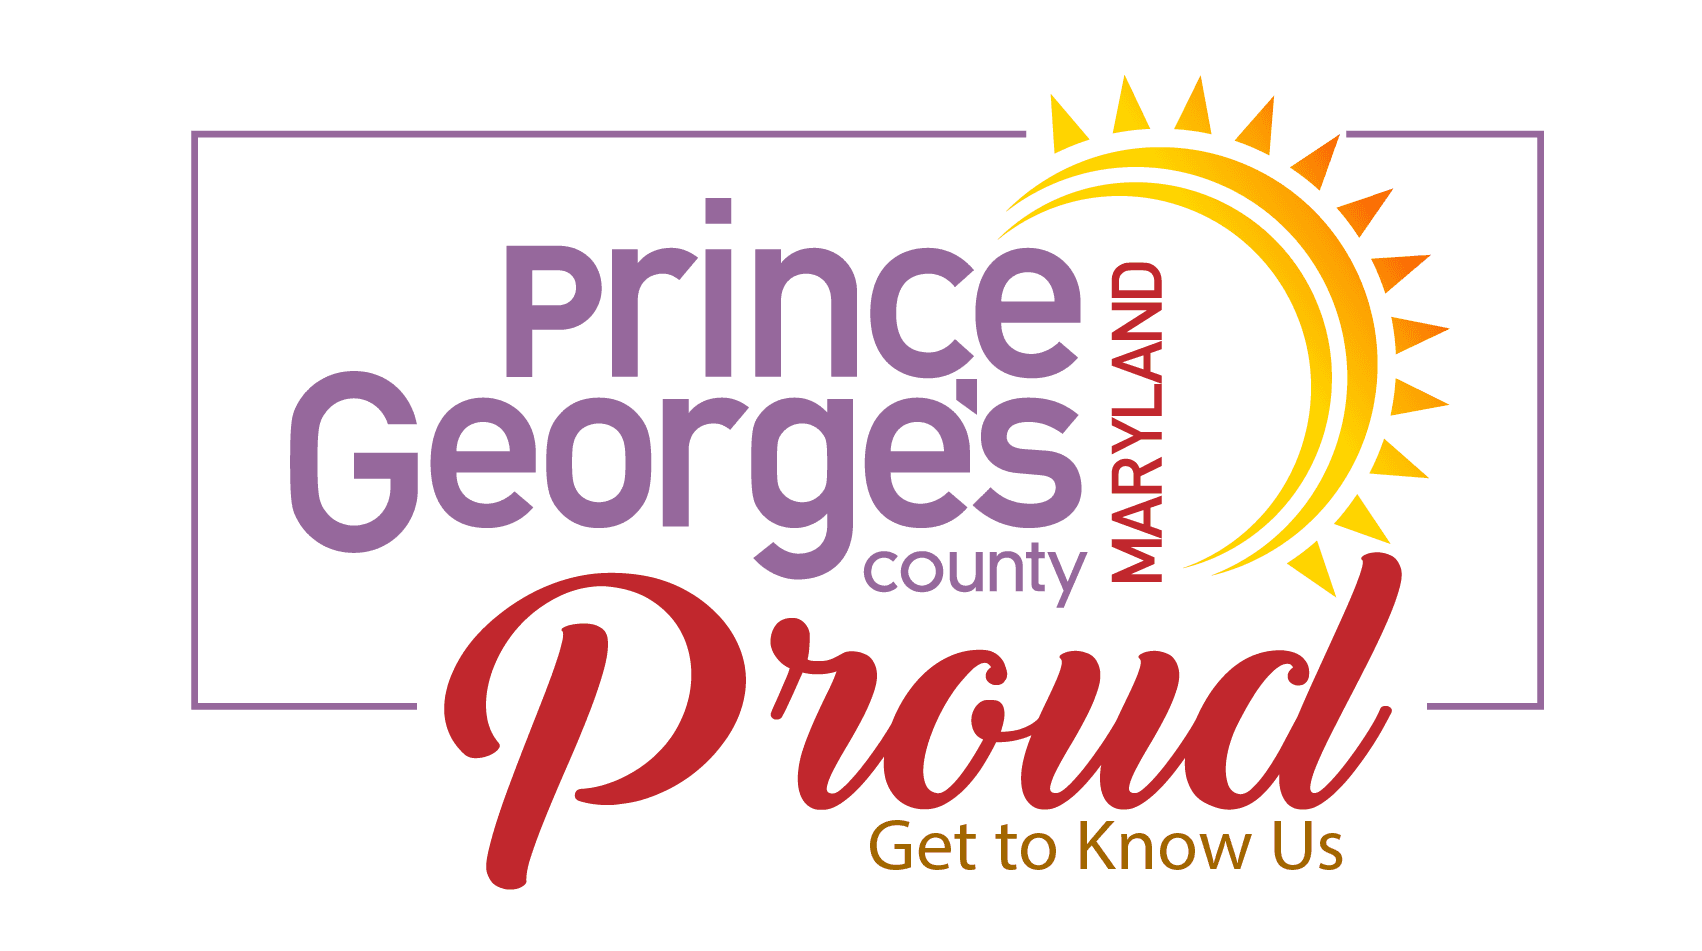 Prince George's County, Maryland Proud, Get to Know Us!